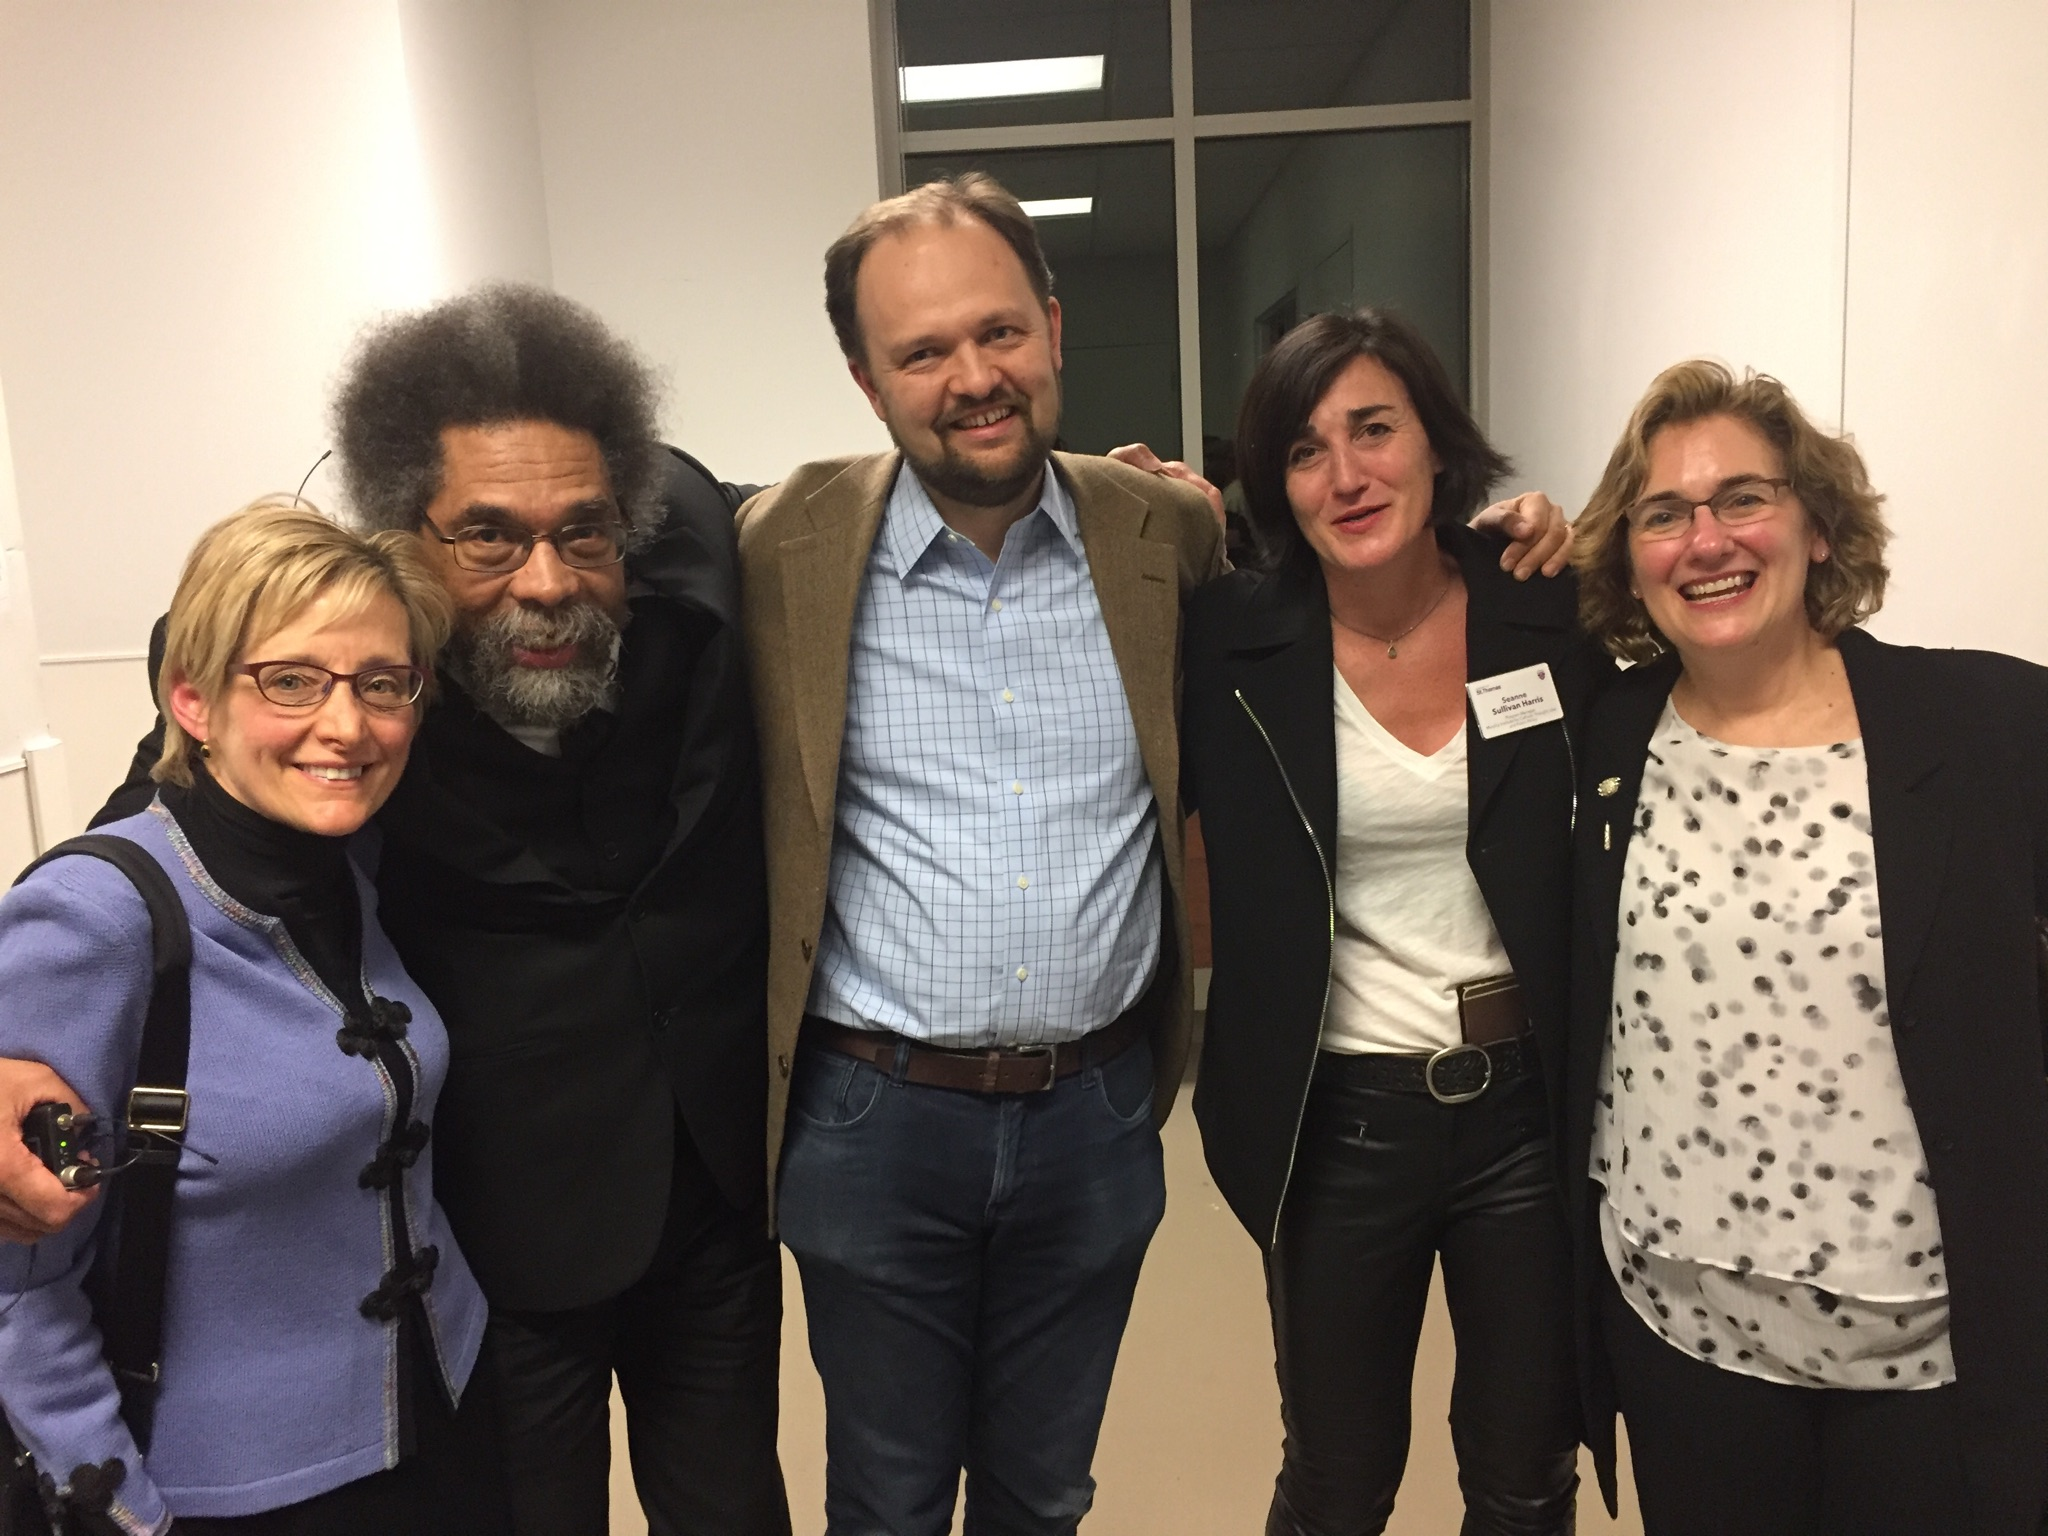 mirror of justice cornel west ross douthat seanne harris the program manager of the murphy institute out whom and i mean this very literally the program